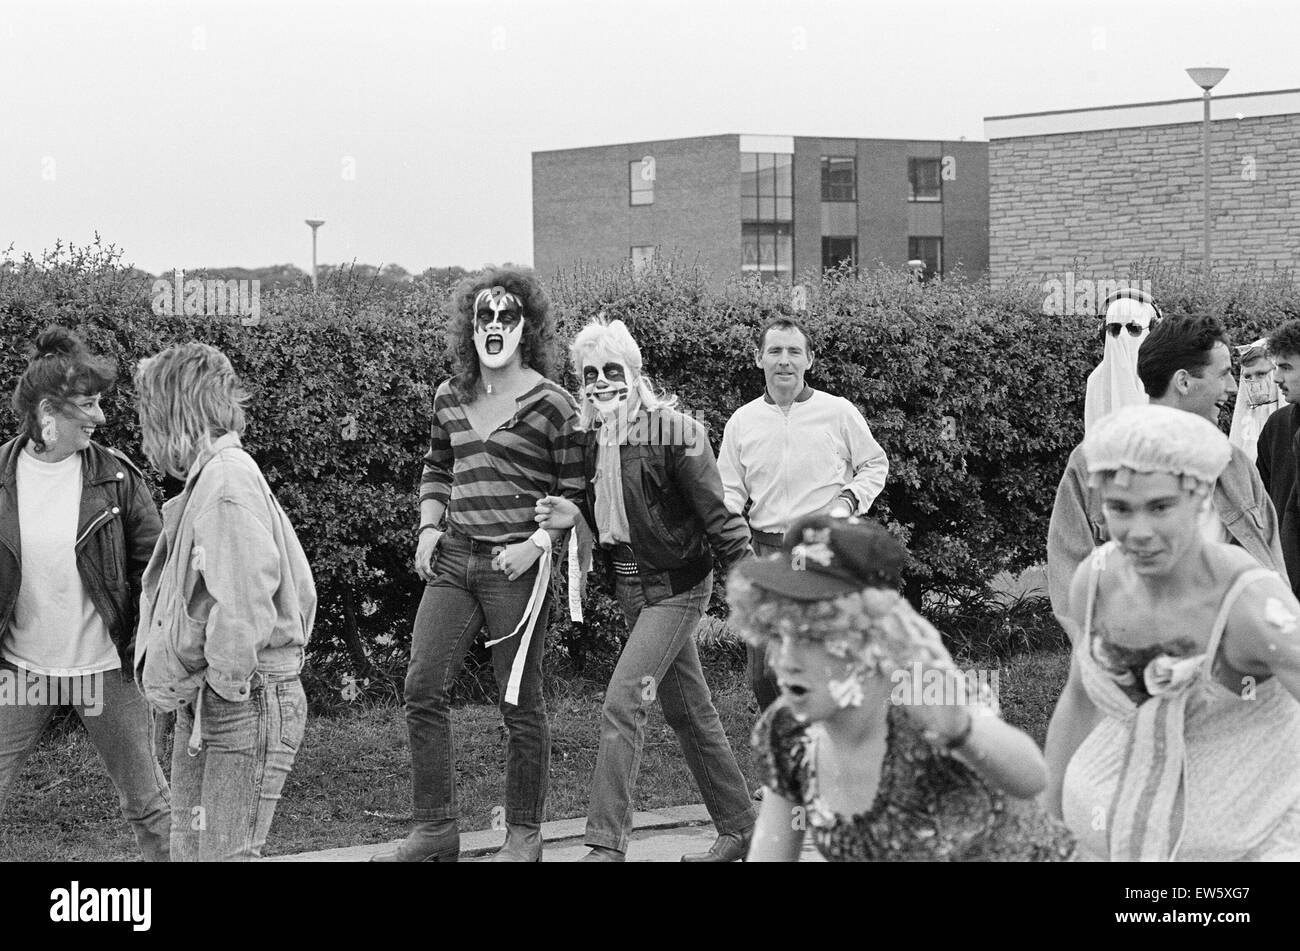 Students from St Mary's Sixth Form College, Middlesbrough, take part in fun run, 11th May 1987. - Stock Image